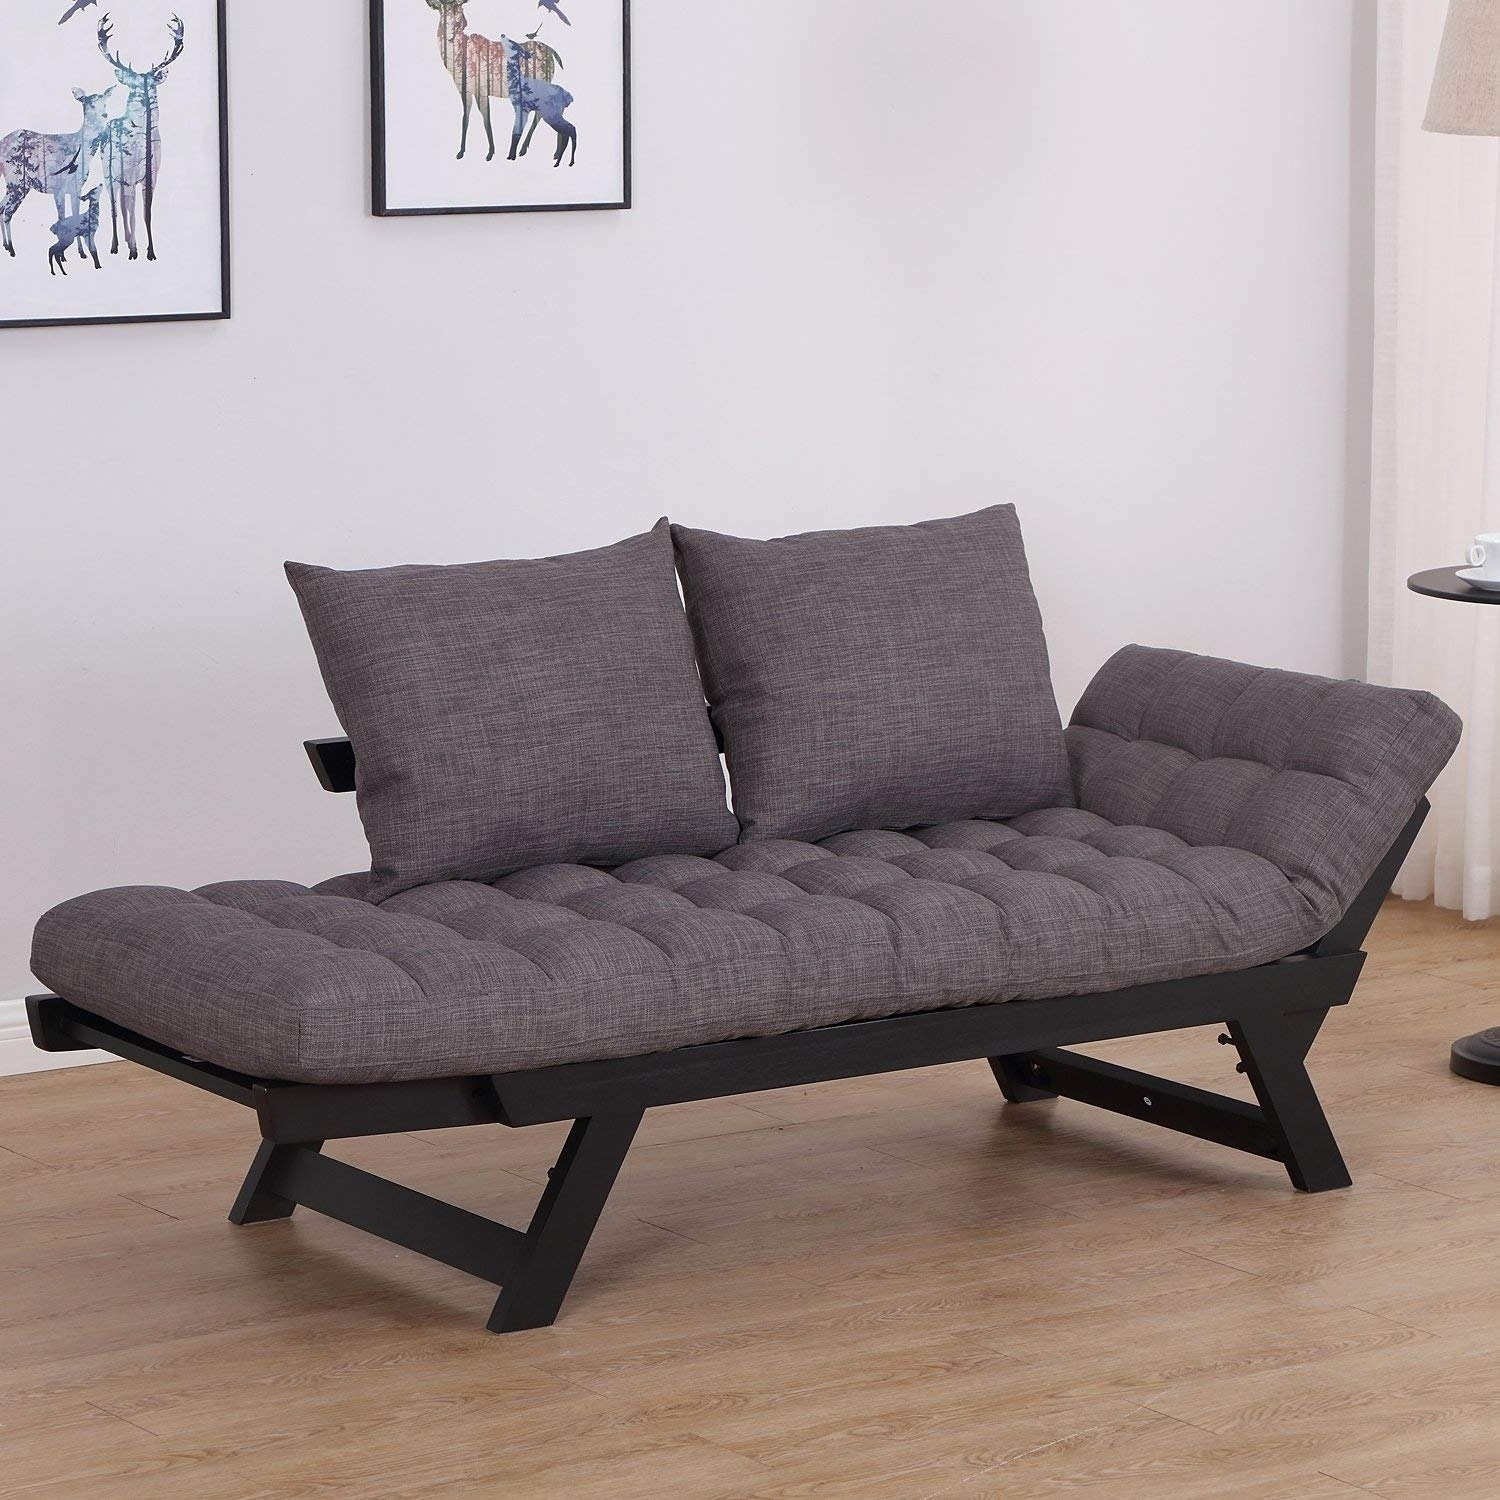 Picture of: Single Person 3 Position Convertible Couch Chaise Lounger Sofa Bed On Sale Overstock 22310281